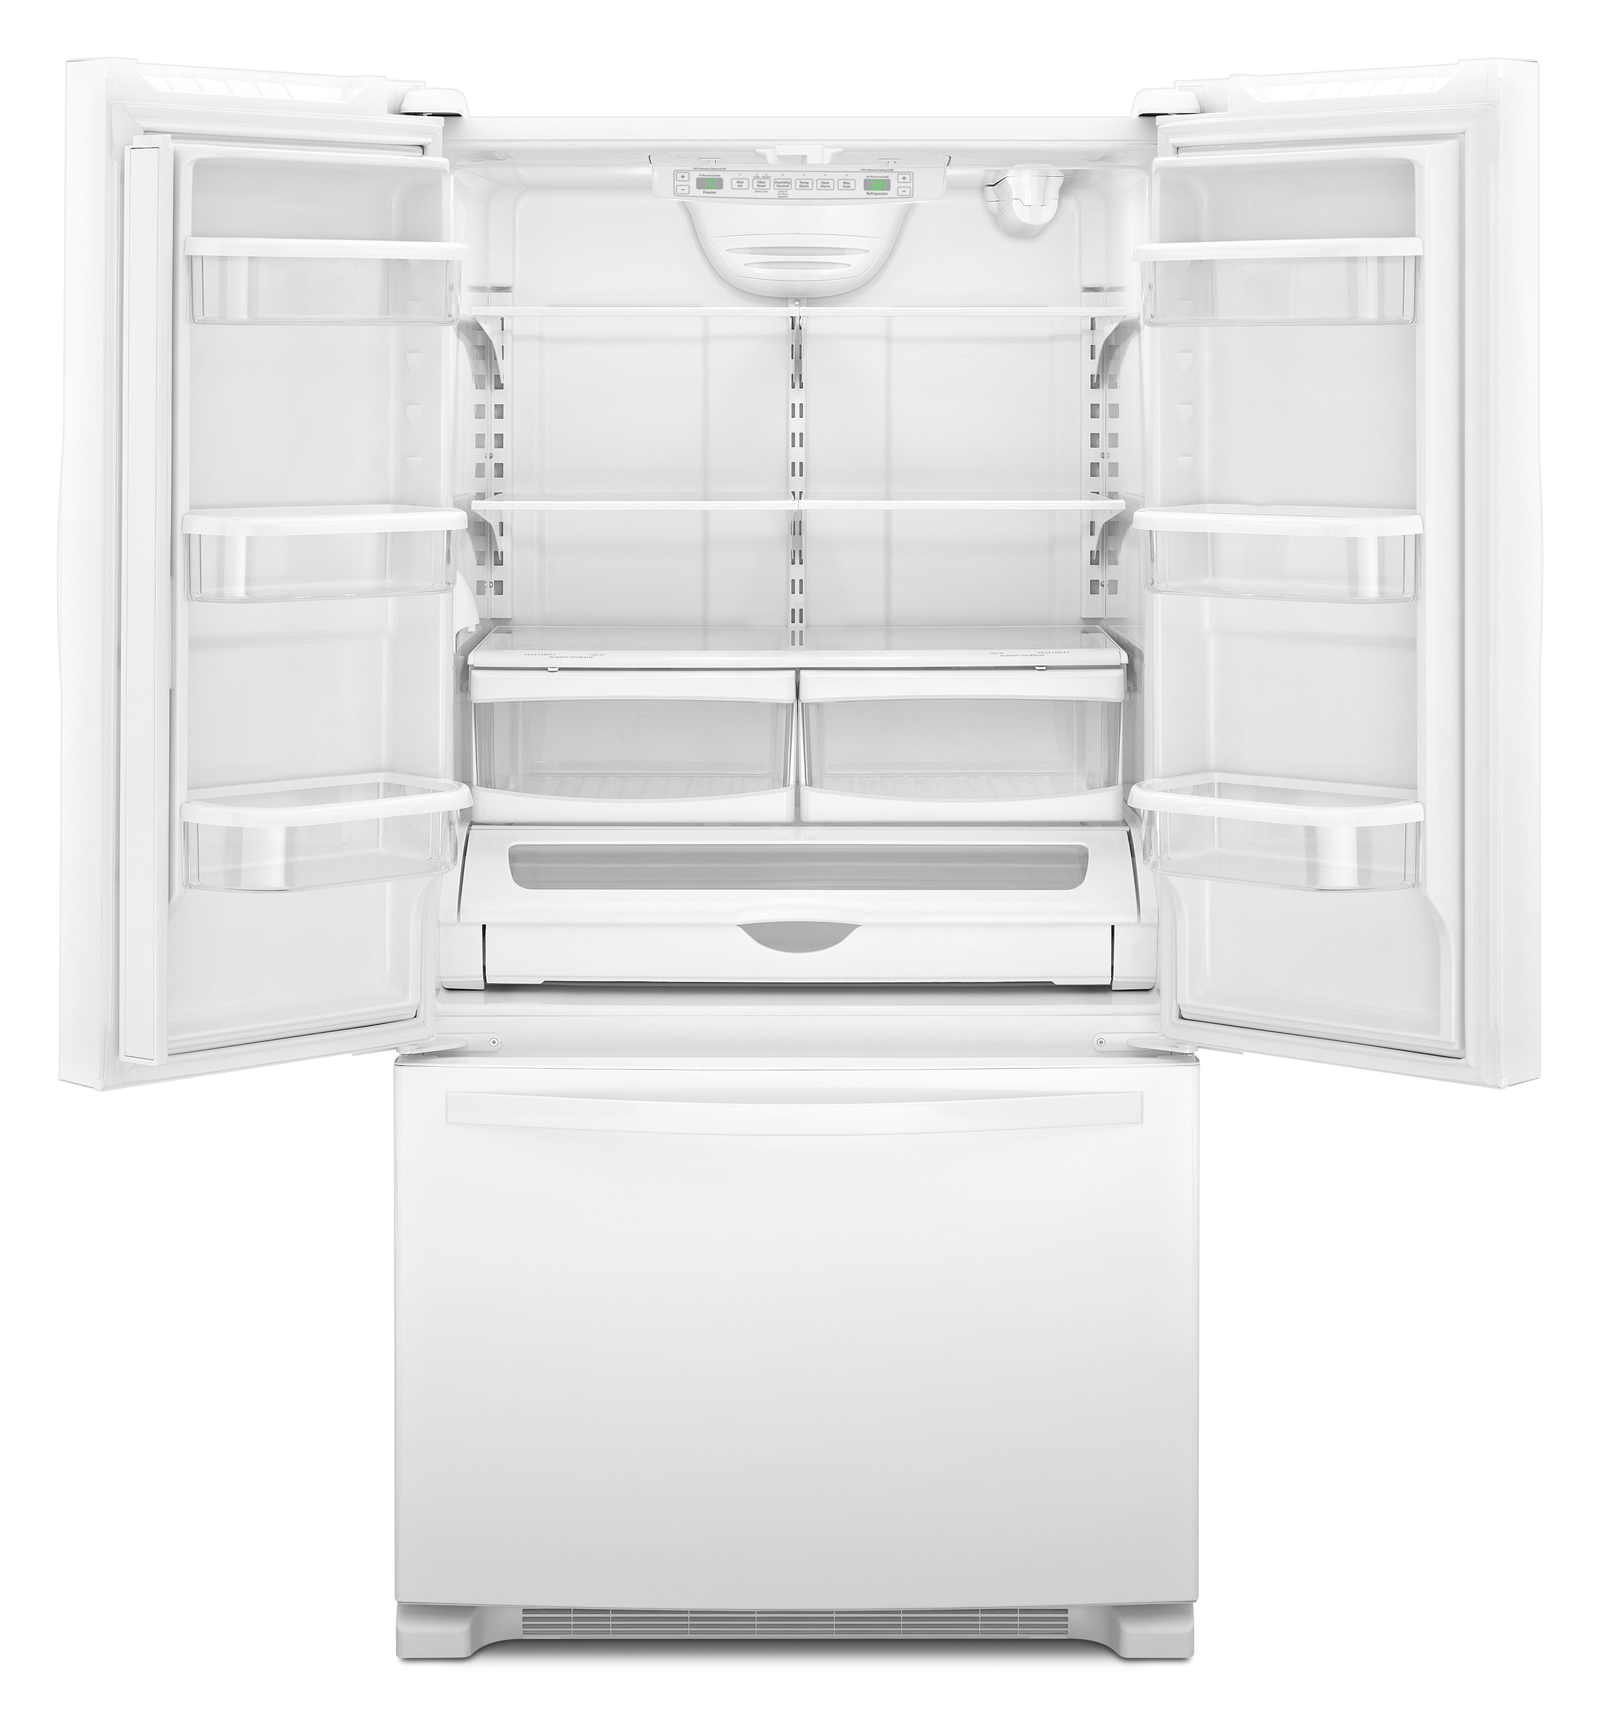 Whirlpool WRF540CWBW 20 cu. ft. Counter-Depth French Door Refrigerator w/ Interior Water Dispenser - White